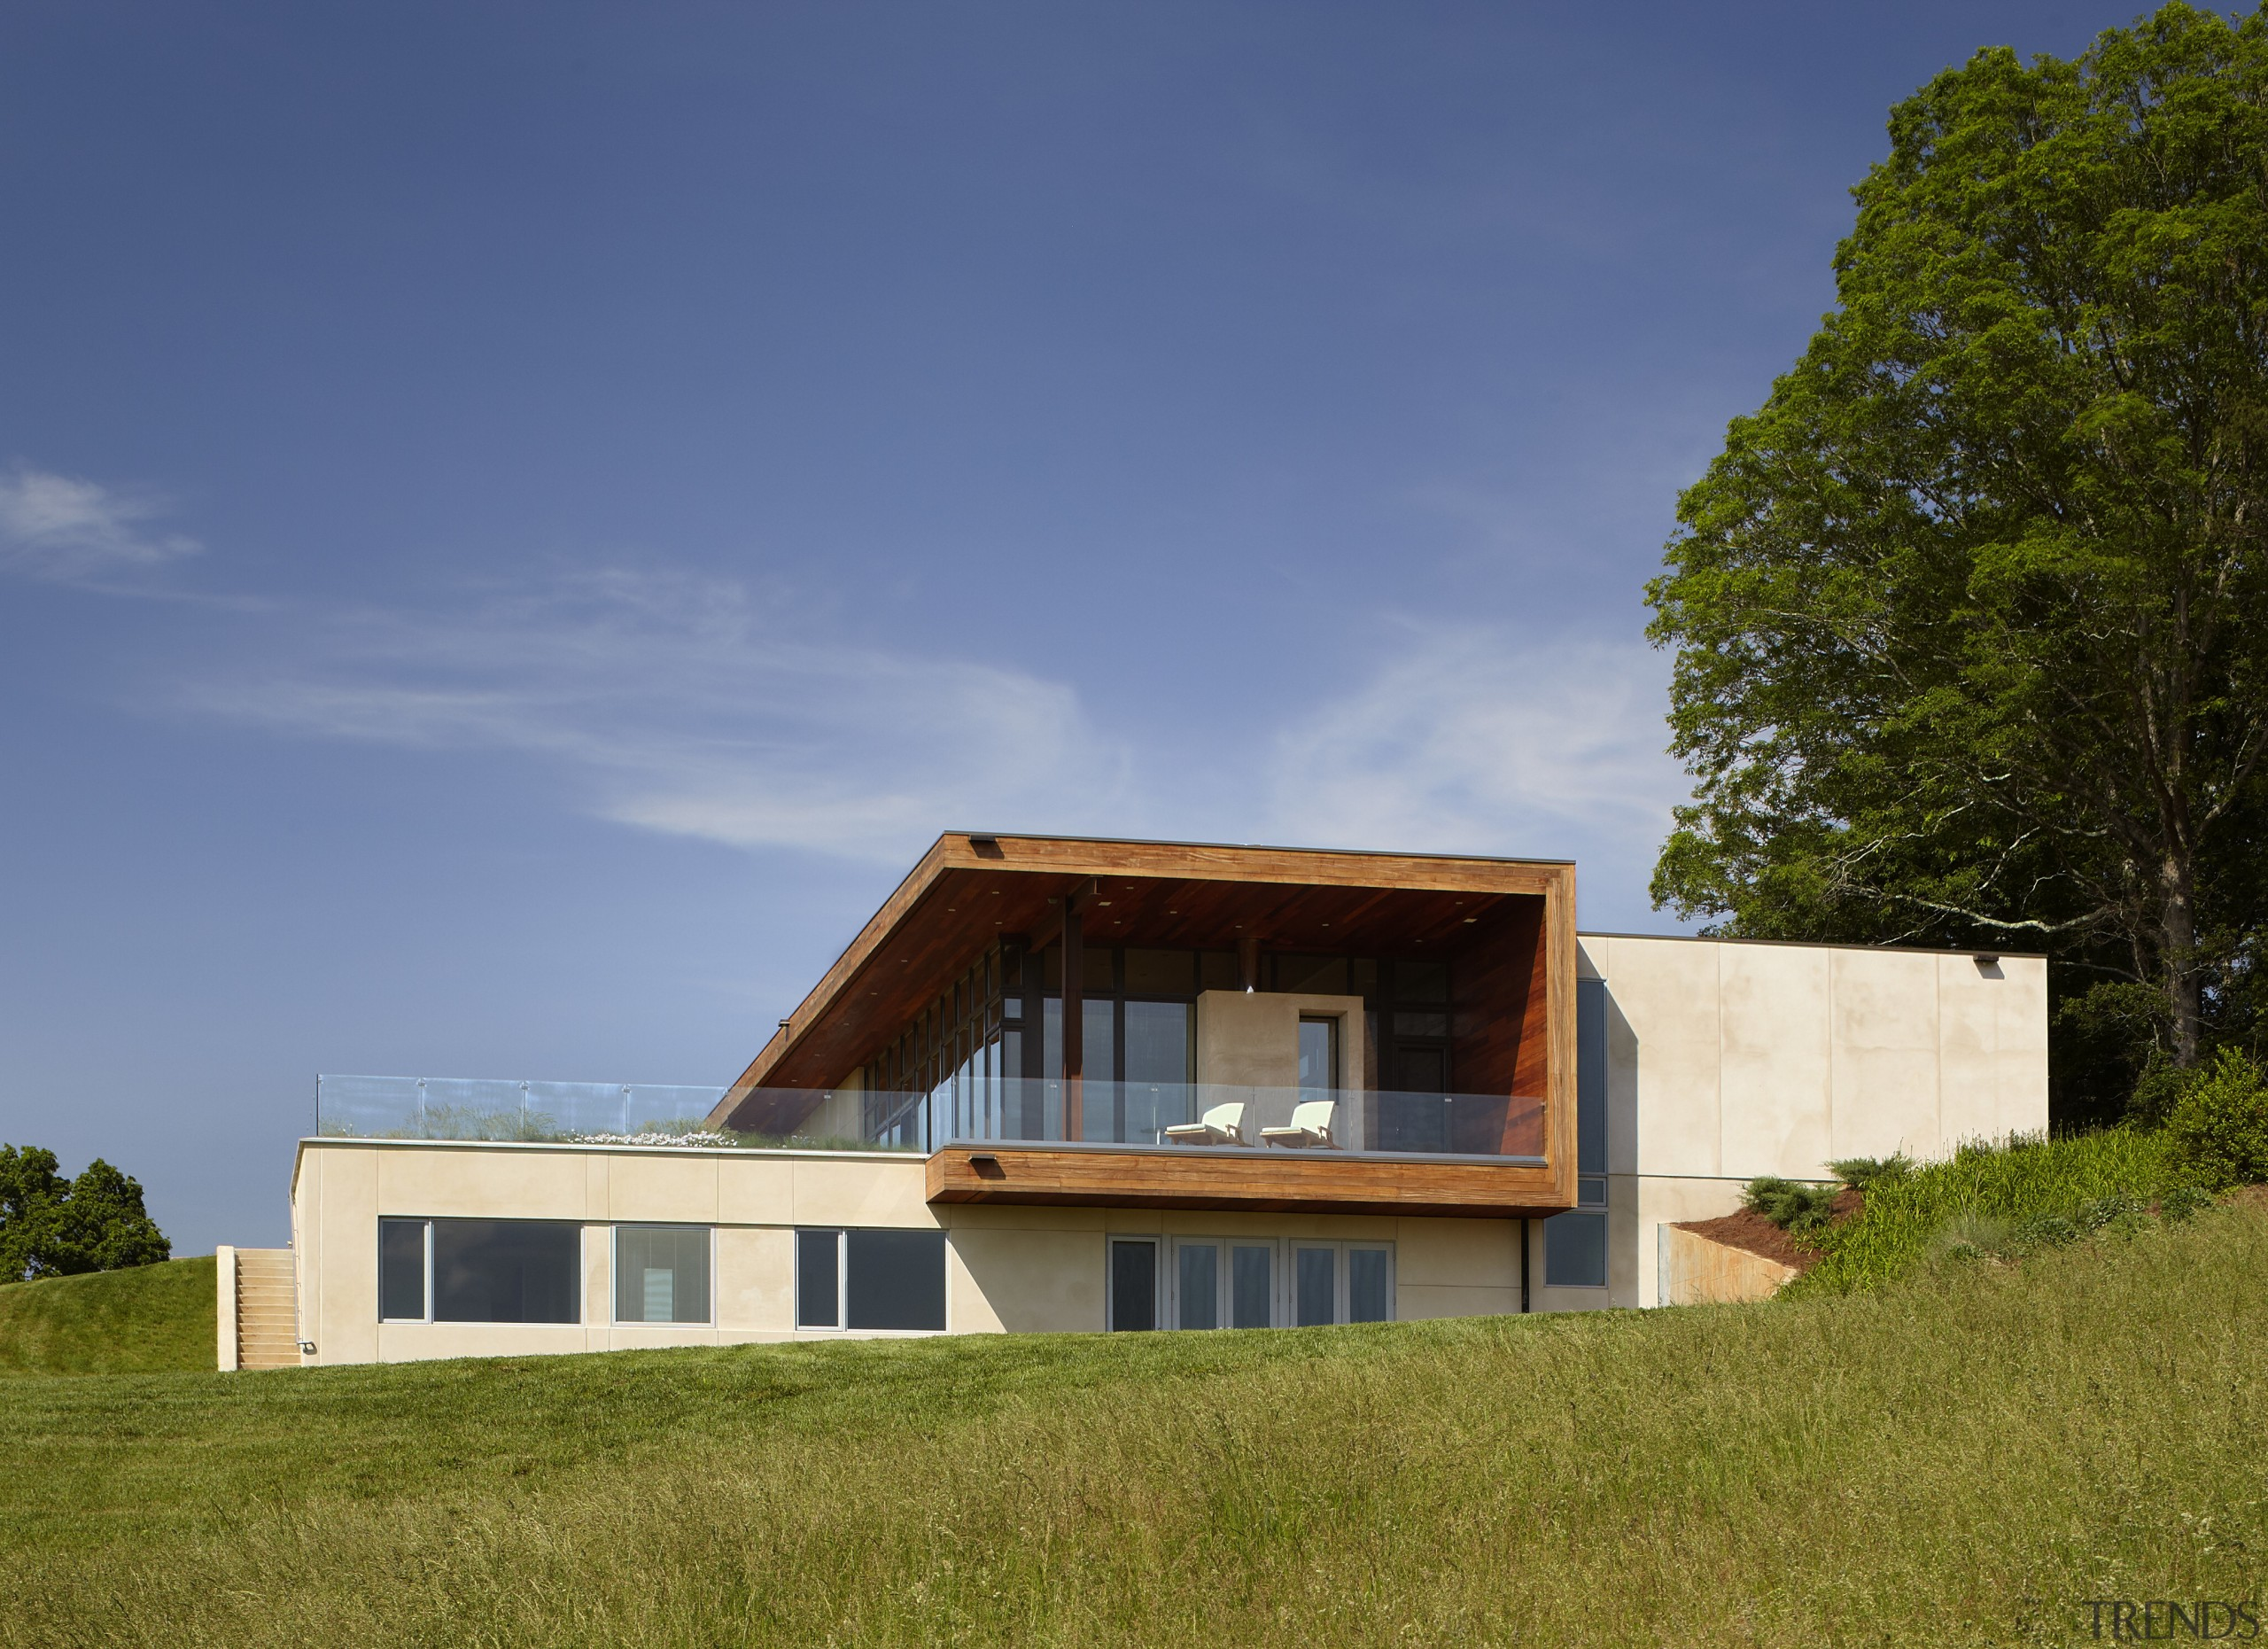 Exterior of house with rusted corten steel. Sustainable architecture, cottage, elevation, estate, facade, farmhouse, home, house, property, real estate, sky, villa, brown, blue